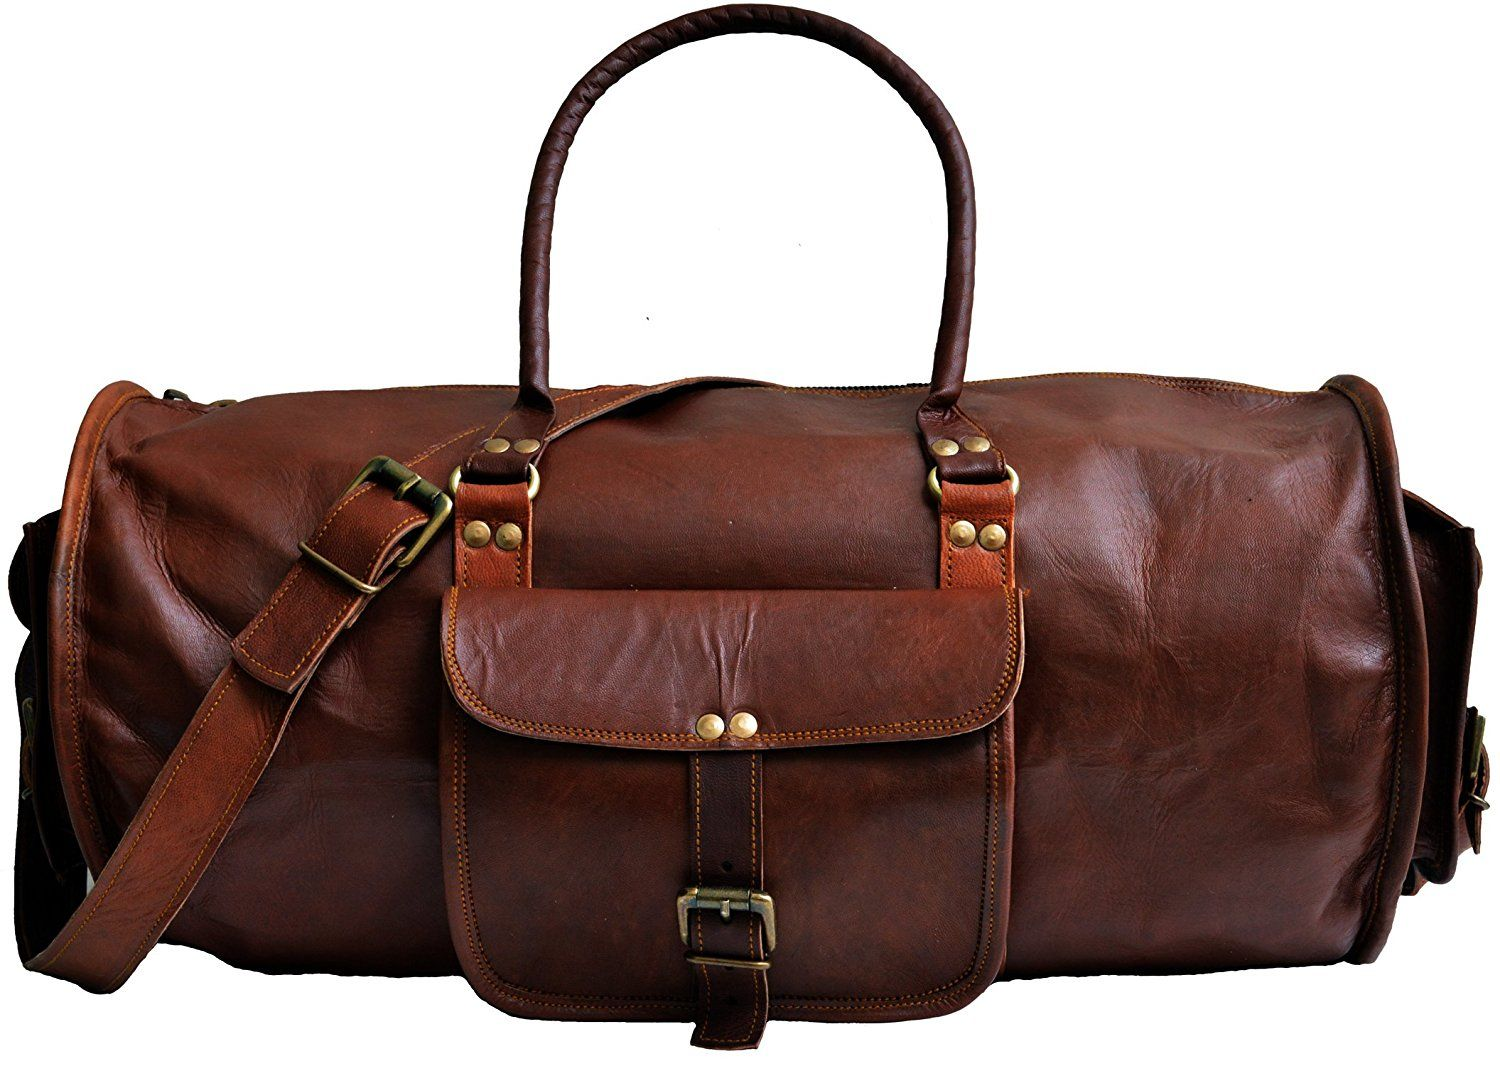 b11591867c78 jaald 20' Genuine Leather Men's Duffel bag Gym Sports Travel Weekend ...